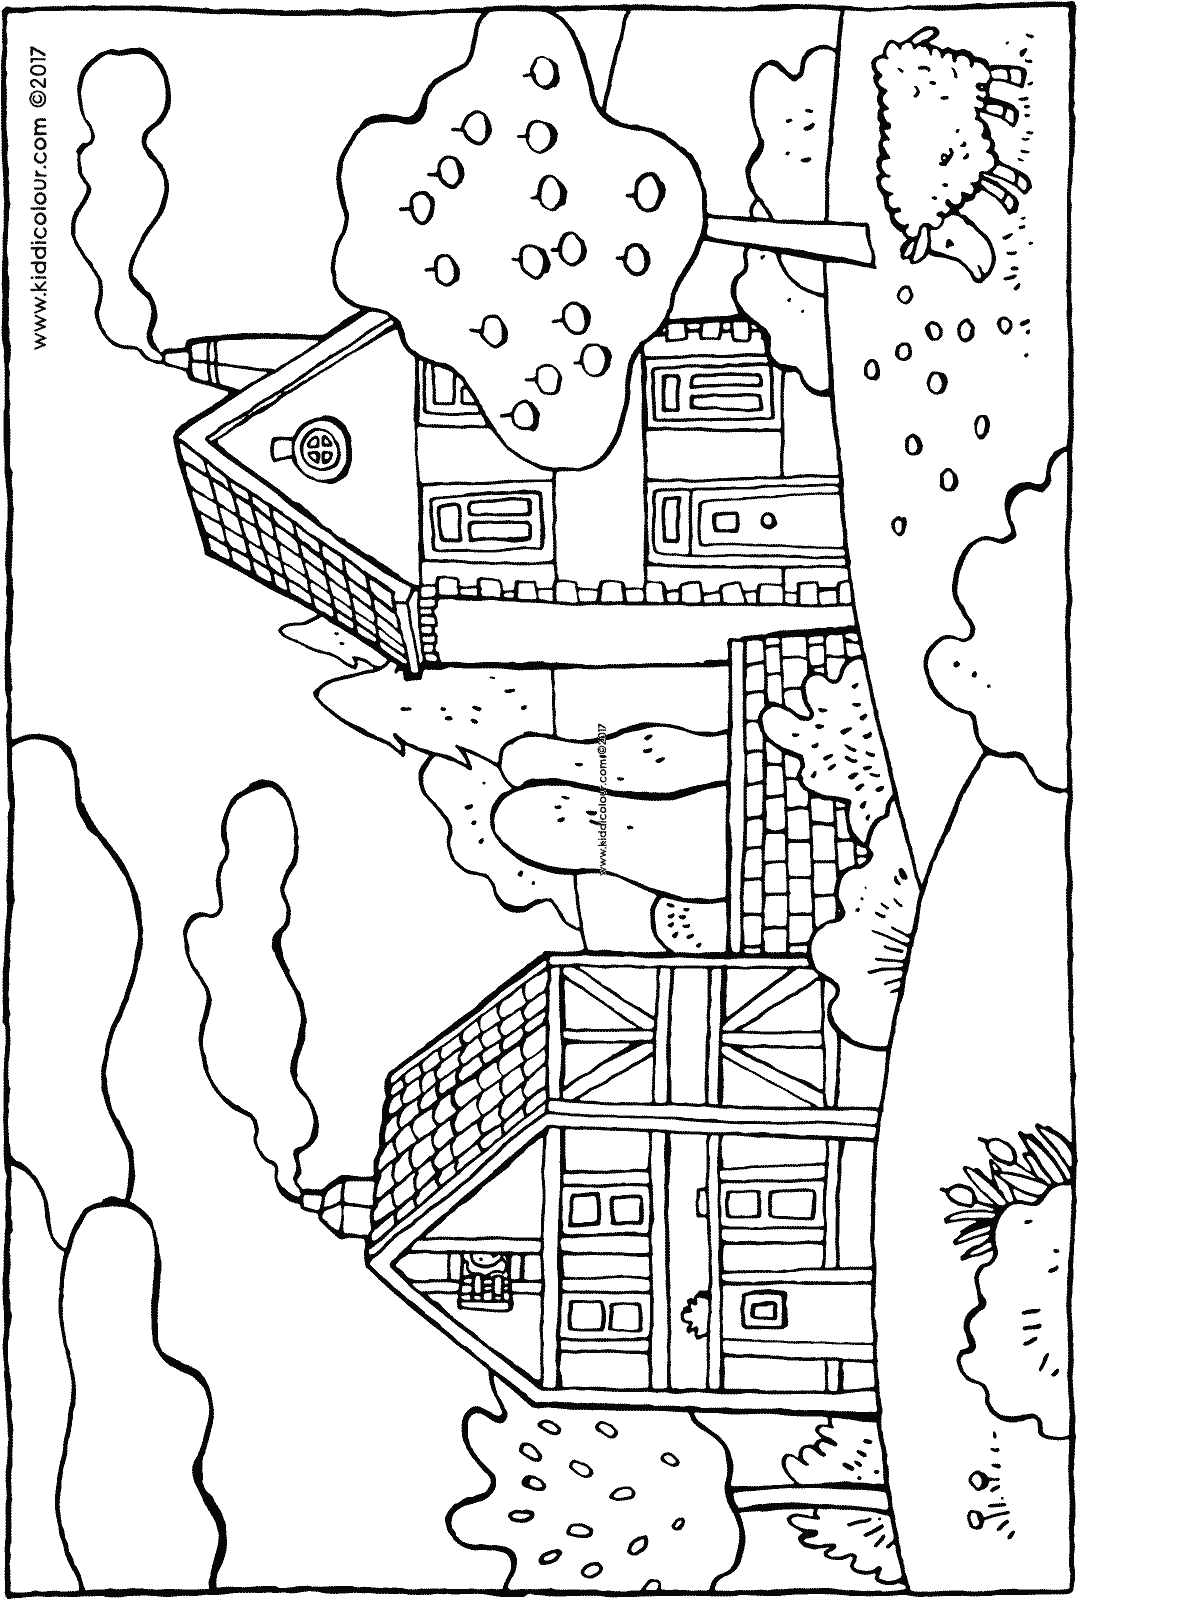 two houses and an apple tree colouring page drawing picture 01H